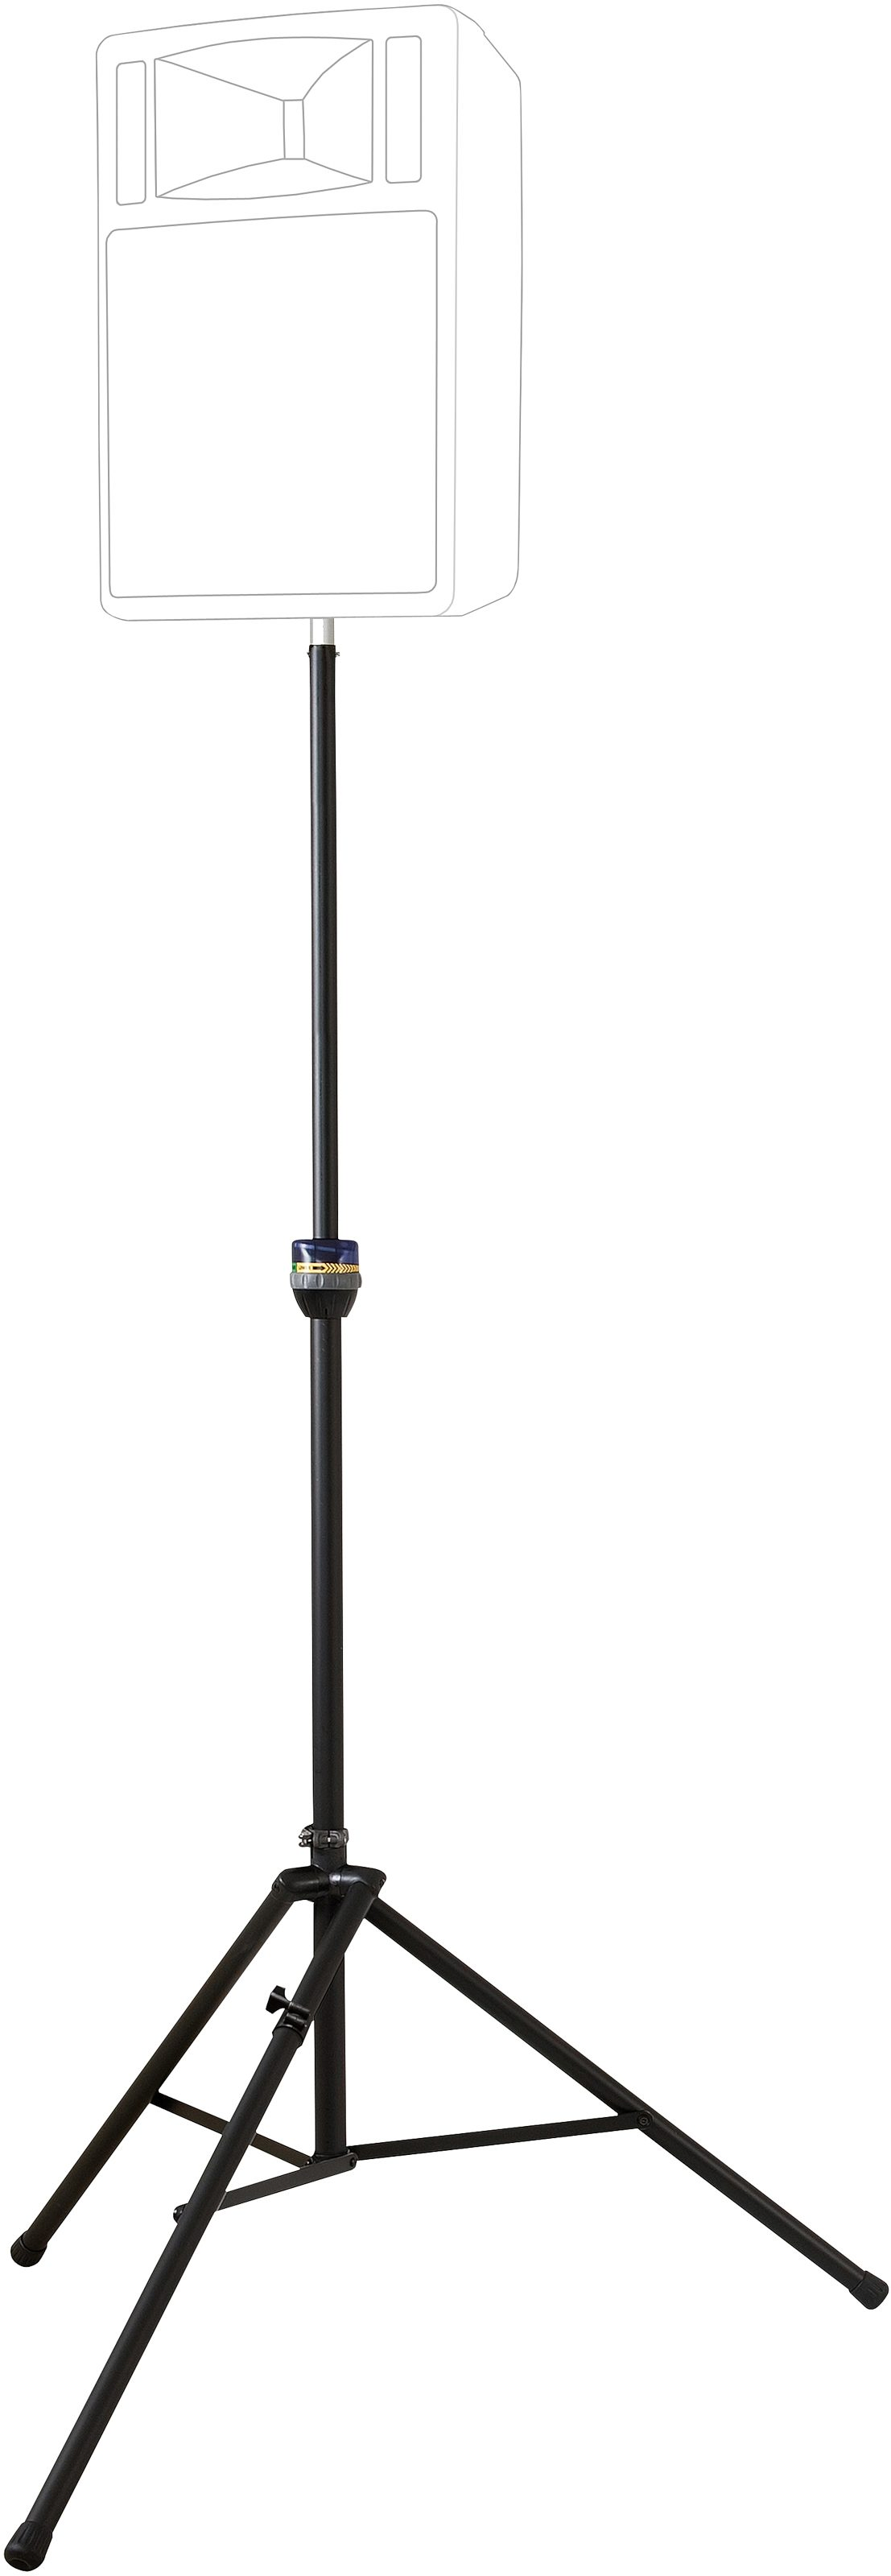 Ultimate Support Ts 99bl Telelock Series Tall Leveling Leg